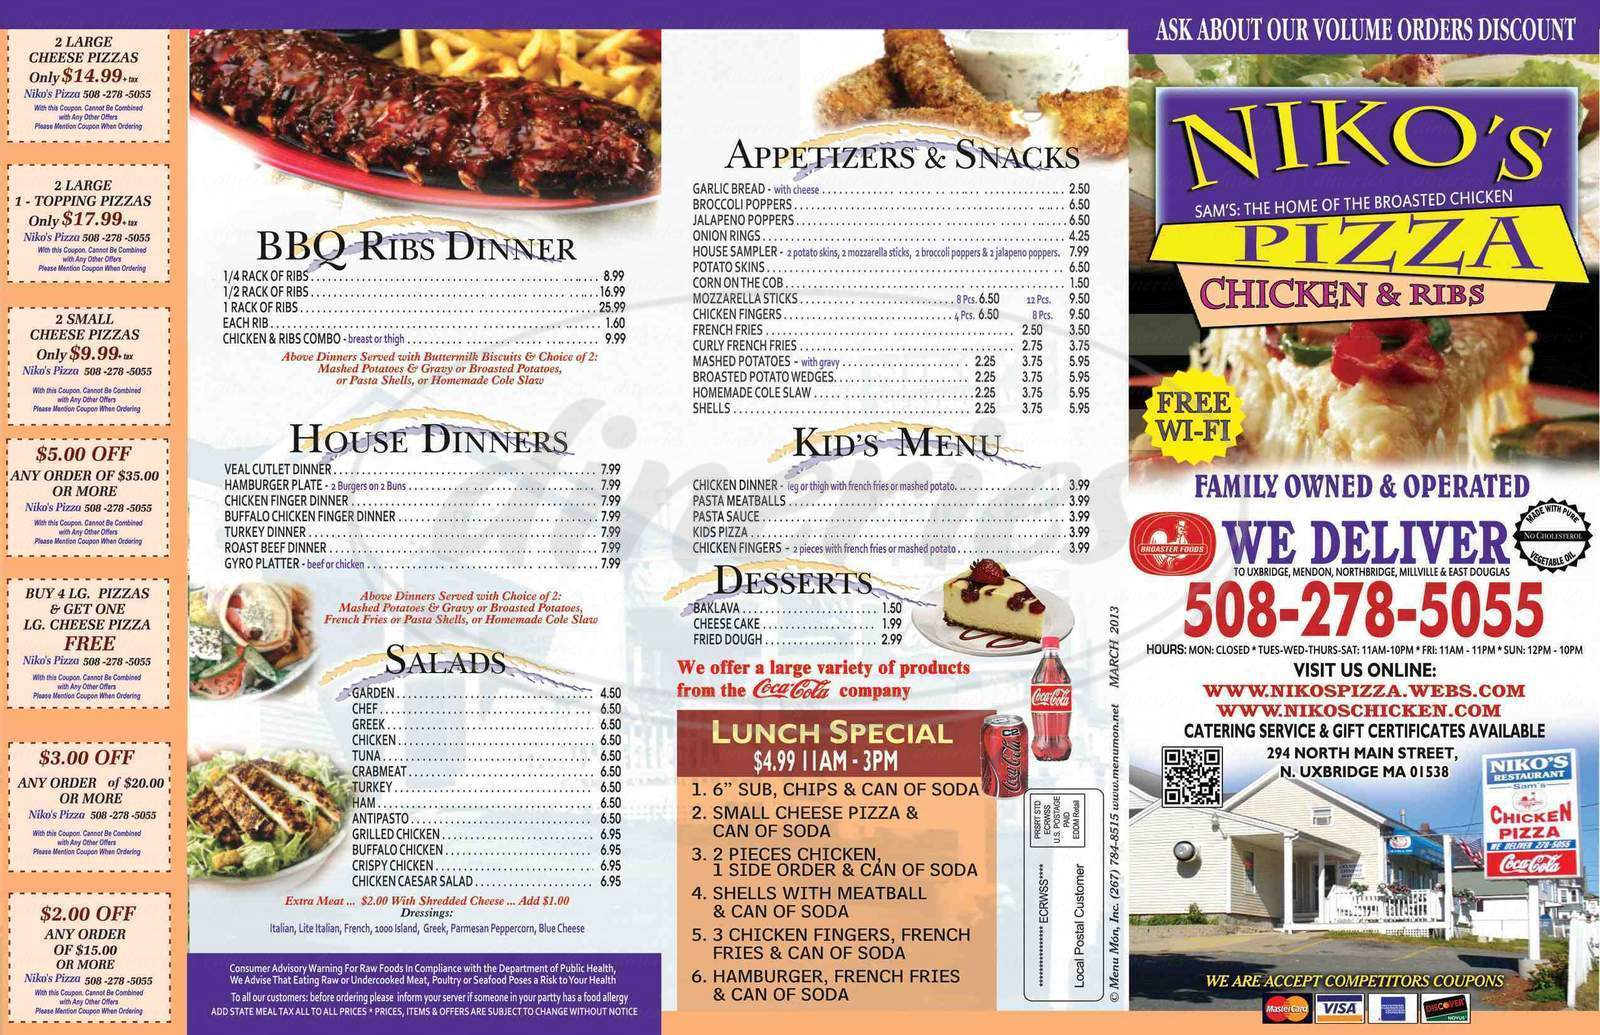 menu for Niko's Pizza Chicken & Ribs